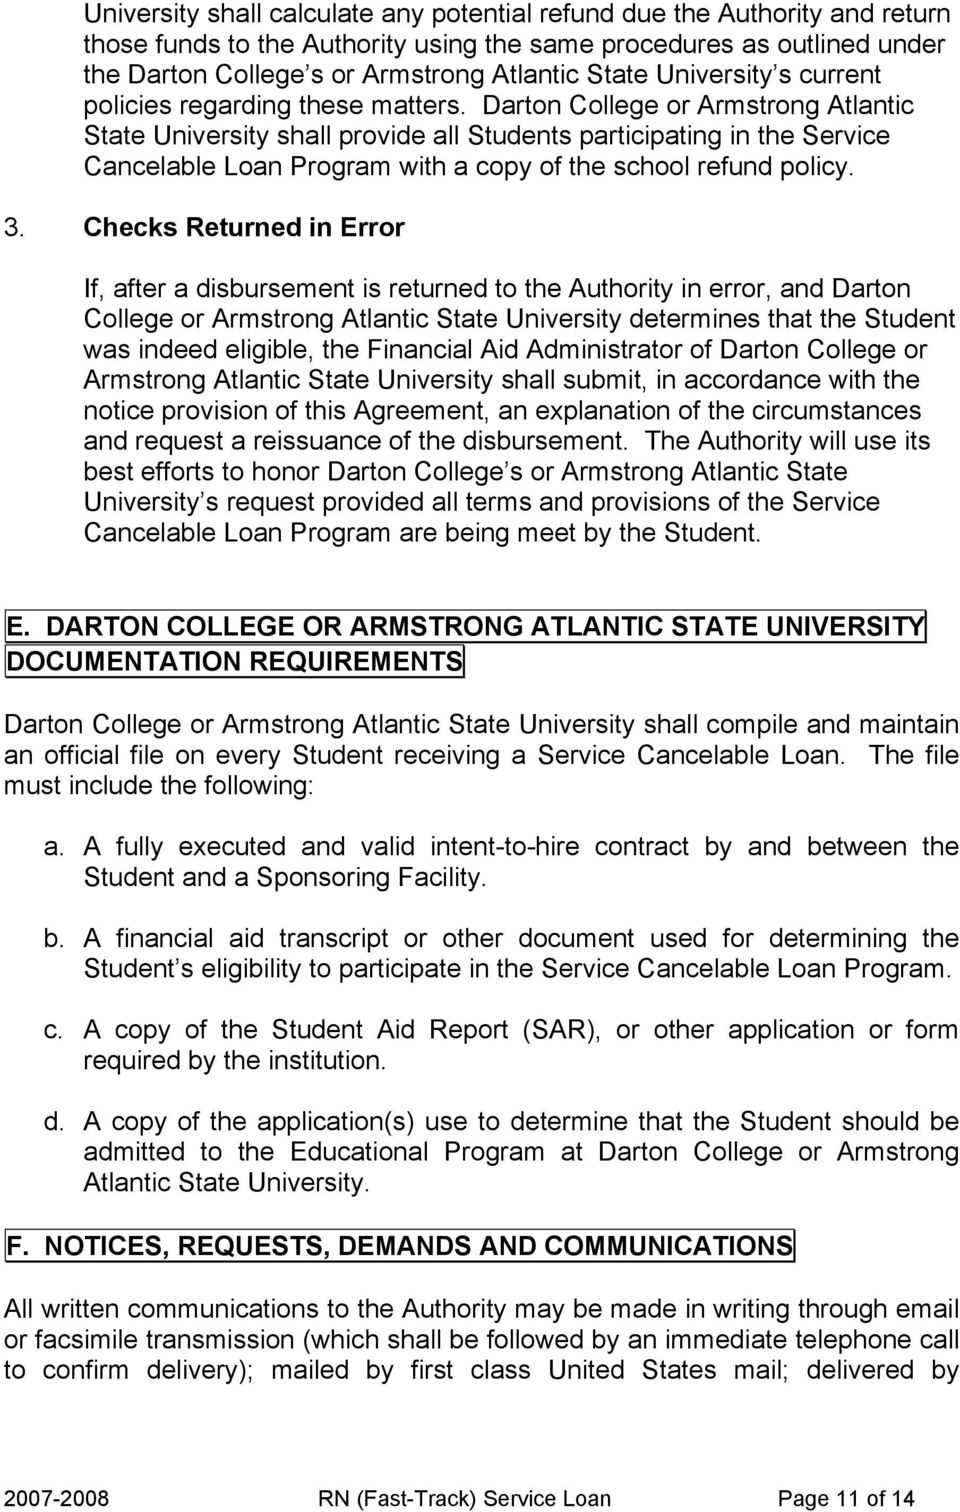 Darton College or Armstrong Atlantic State University shall provide all Students participating in the Service Cancelable Loan Program with a copy of the school refund policy. 3.